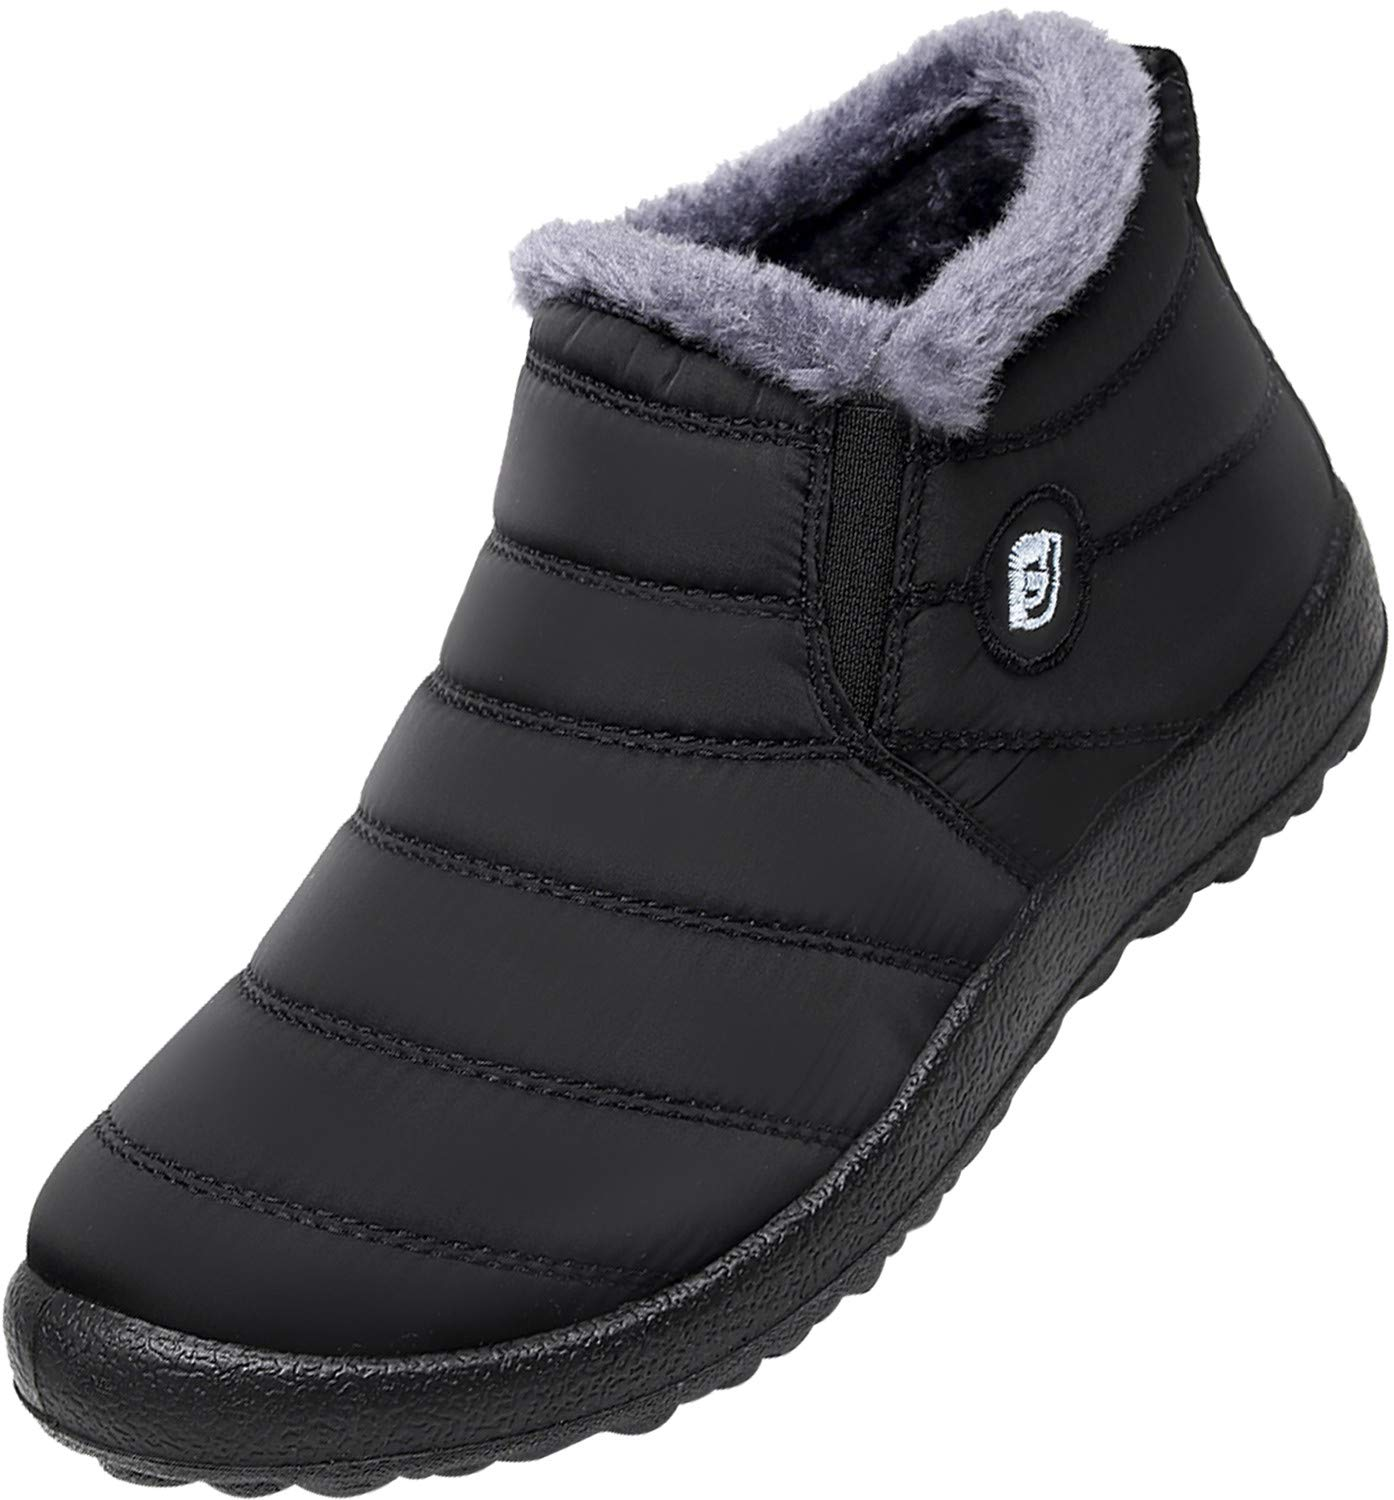 JOINFREE Womens Waterproof Snow Boots Fur Lining Slip On with Rubber Soles Black 8.5 B(M) US